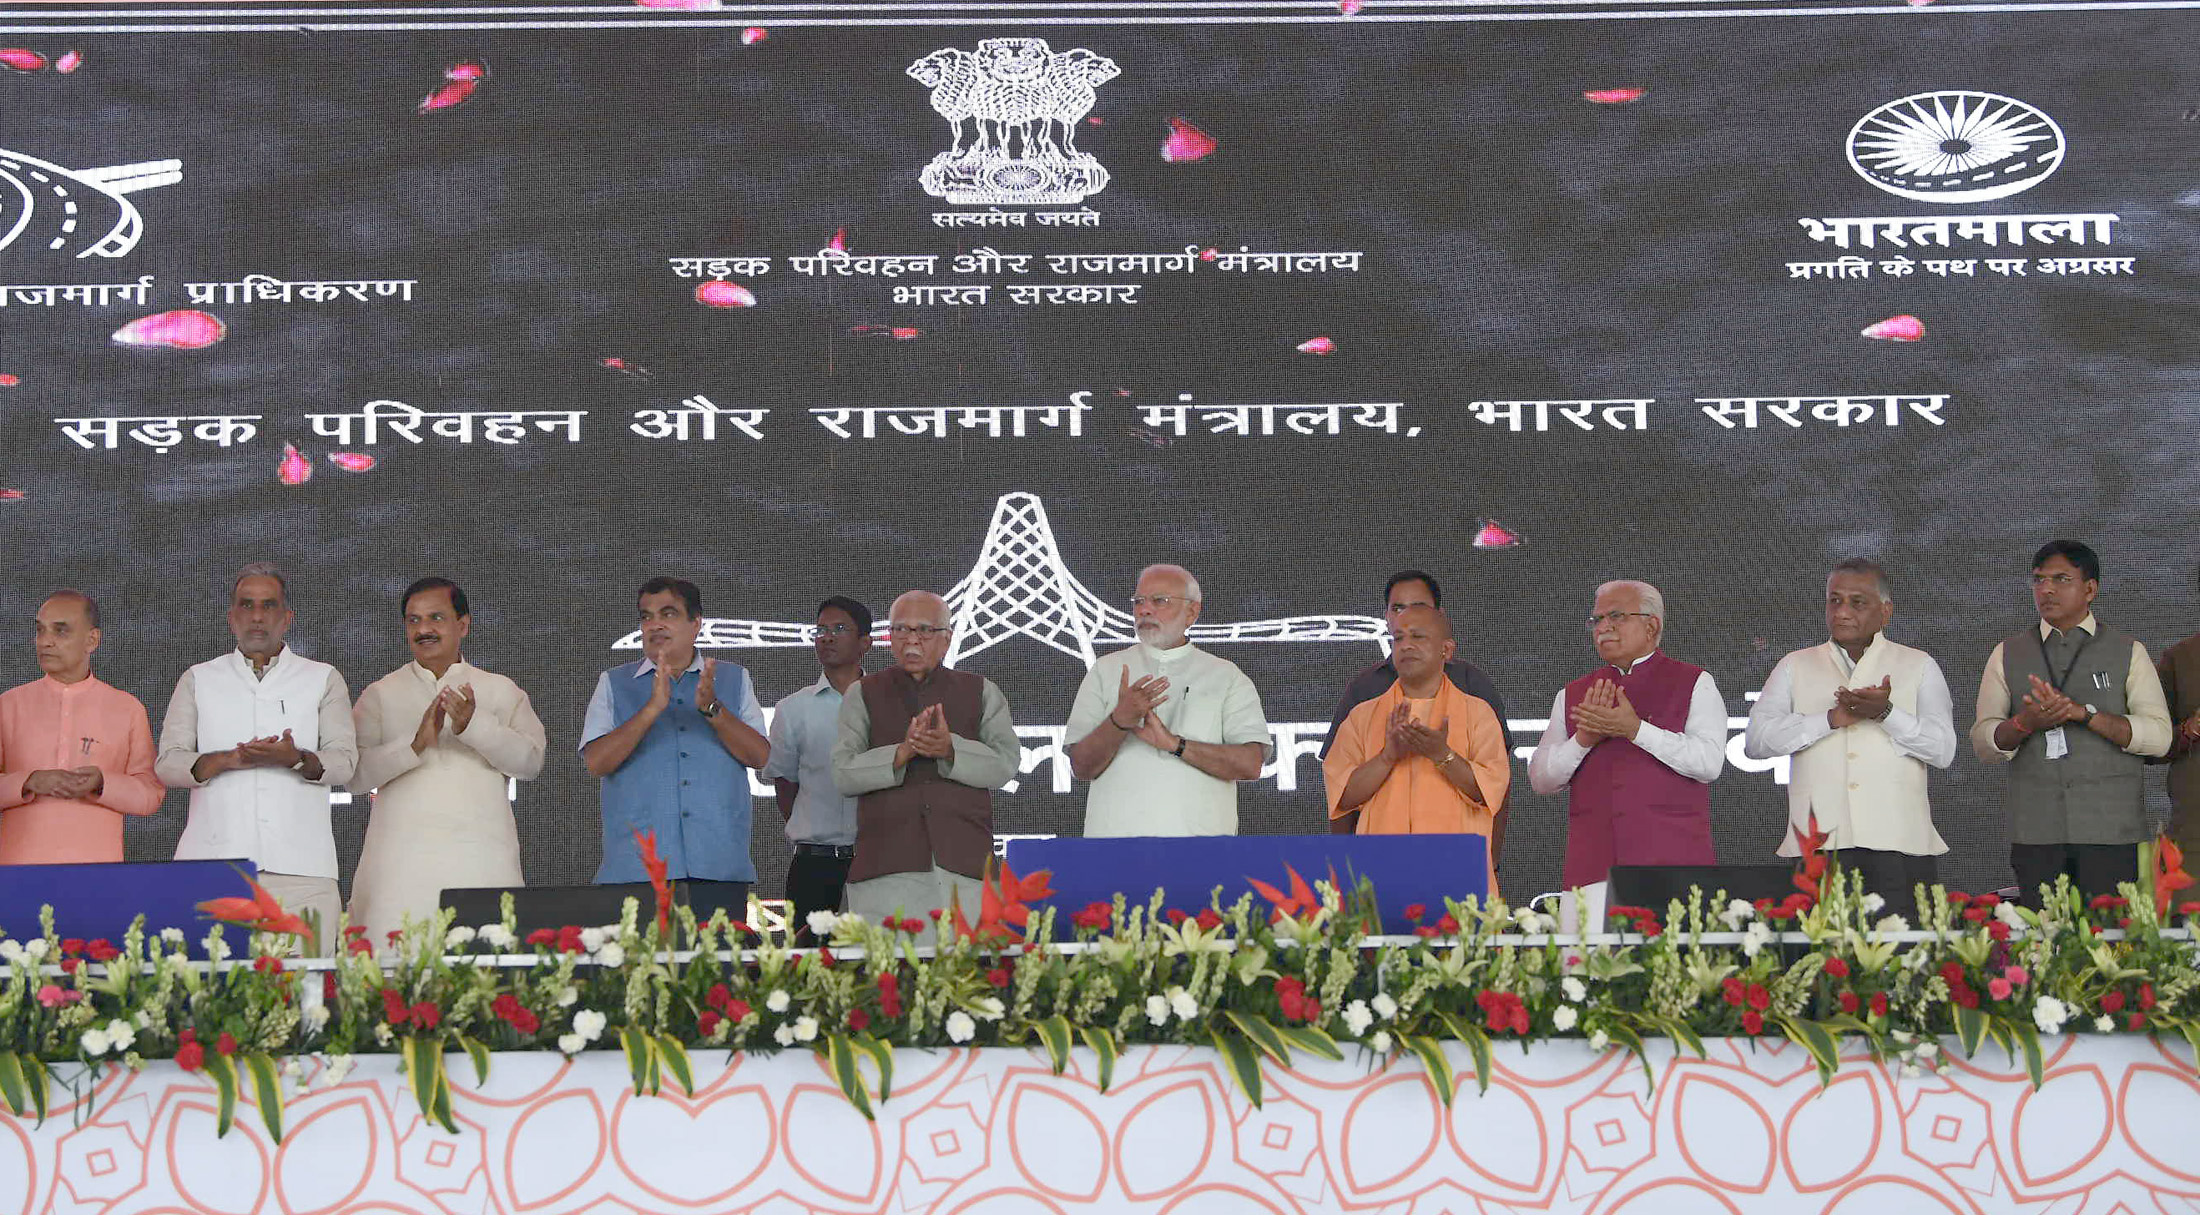 File:The Prime Minister, Shri Narendra Modi at the event